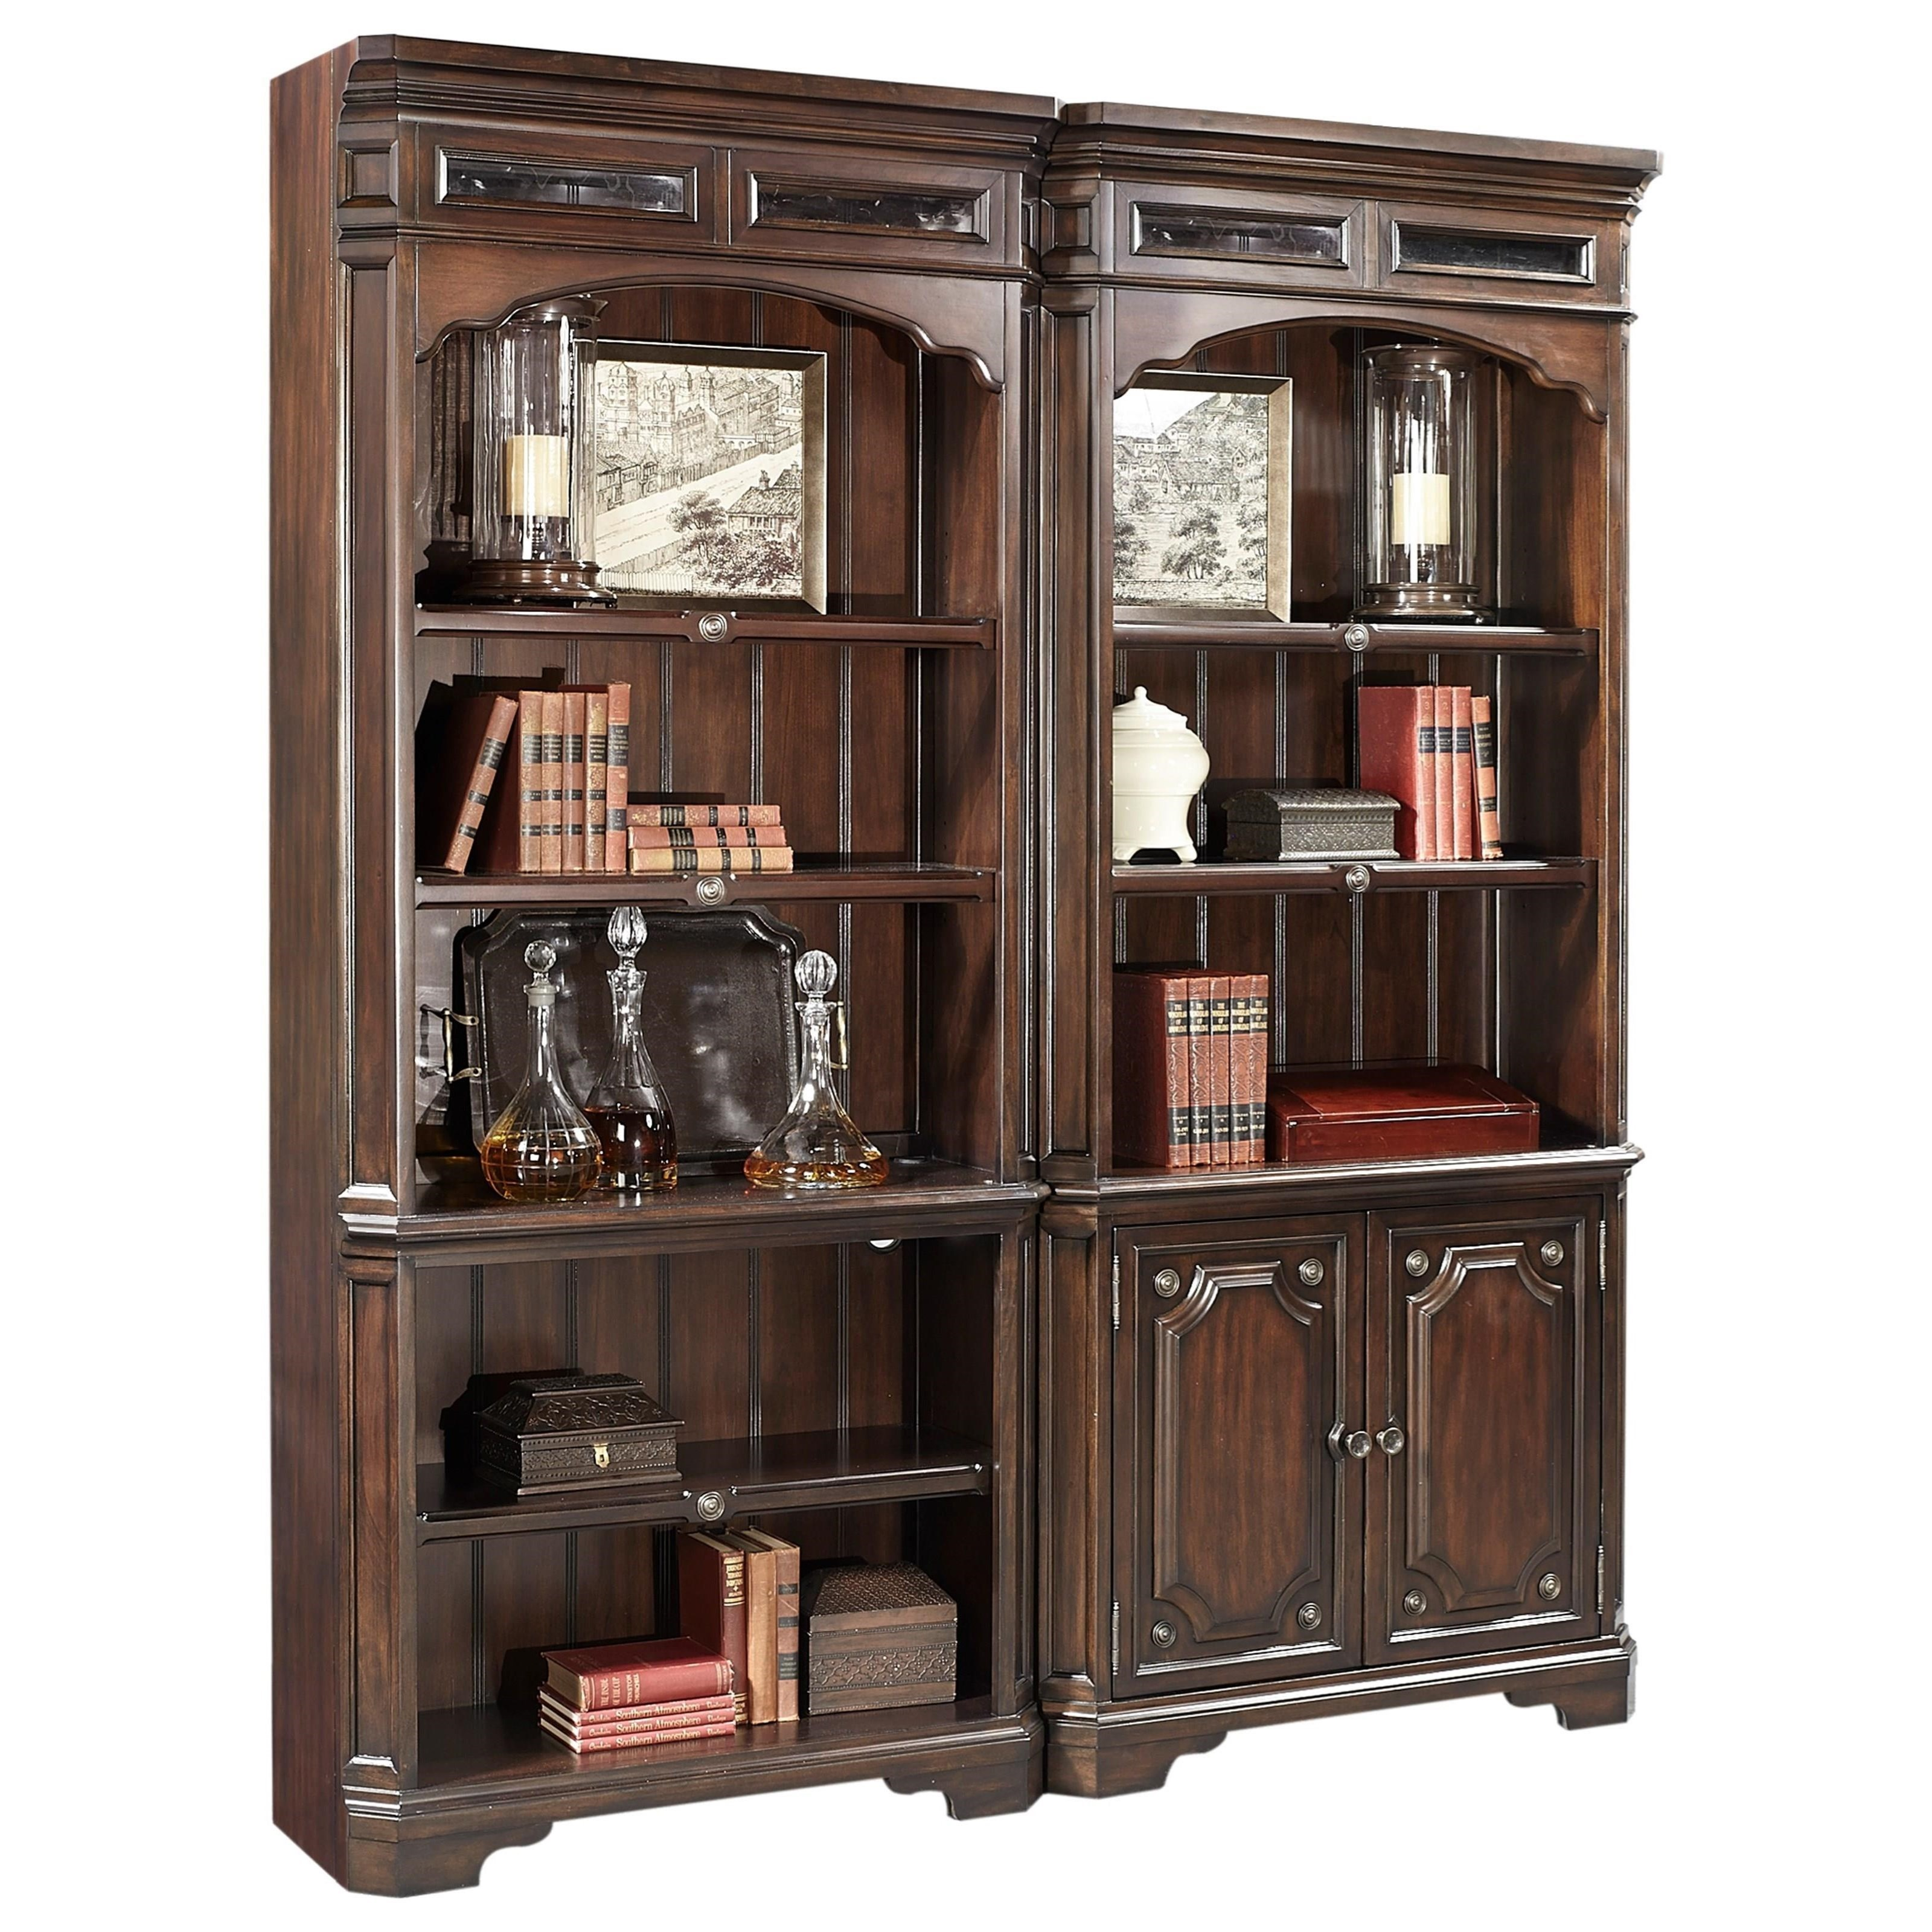 Sheffield Open Bookcase  by Aspenhome at Walker's Furniture